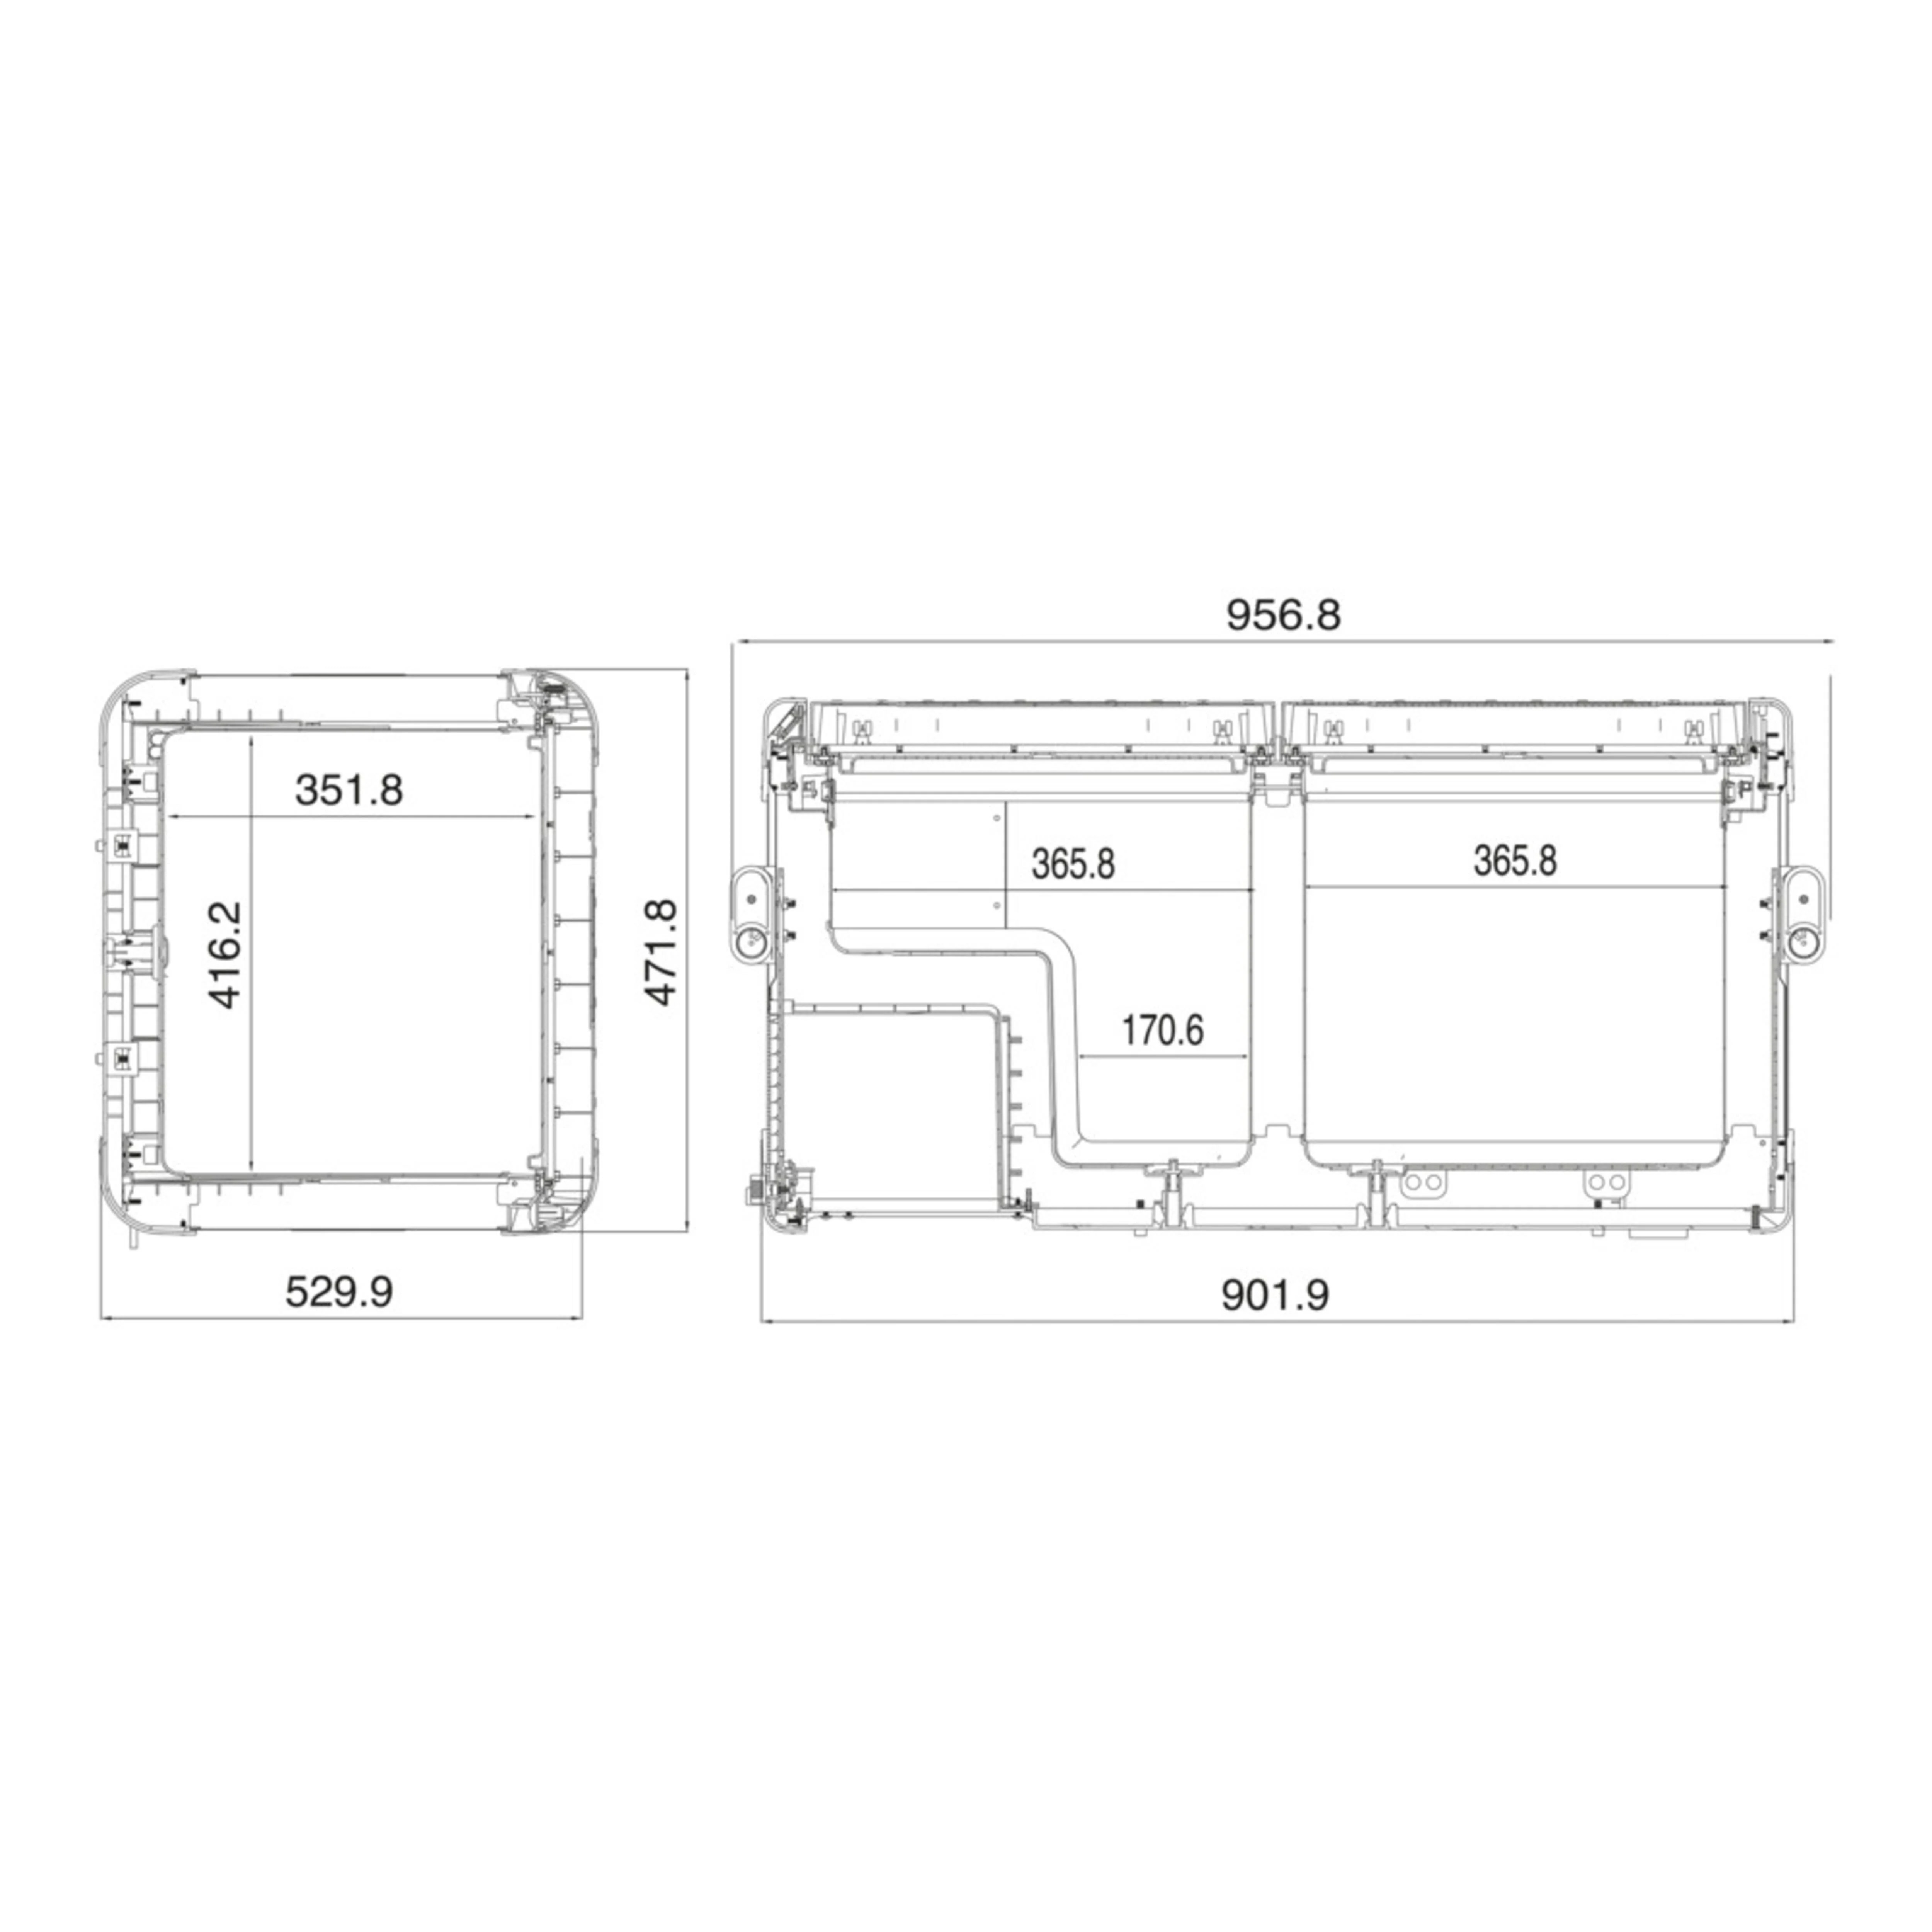 medium resolution of support for dometic waeco cfx 95dzw dometic dometic wire diagrams microwave electrical wiring diagrams dometic waeco source norcold wiring diagram 01340